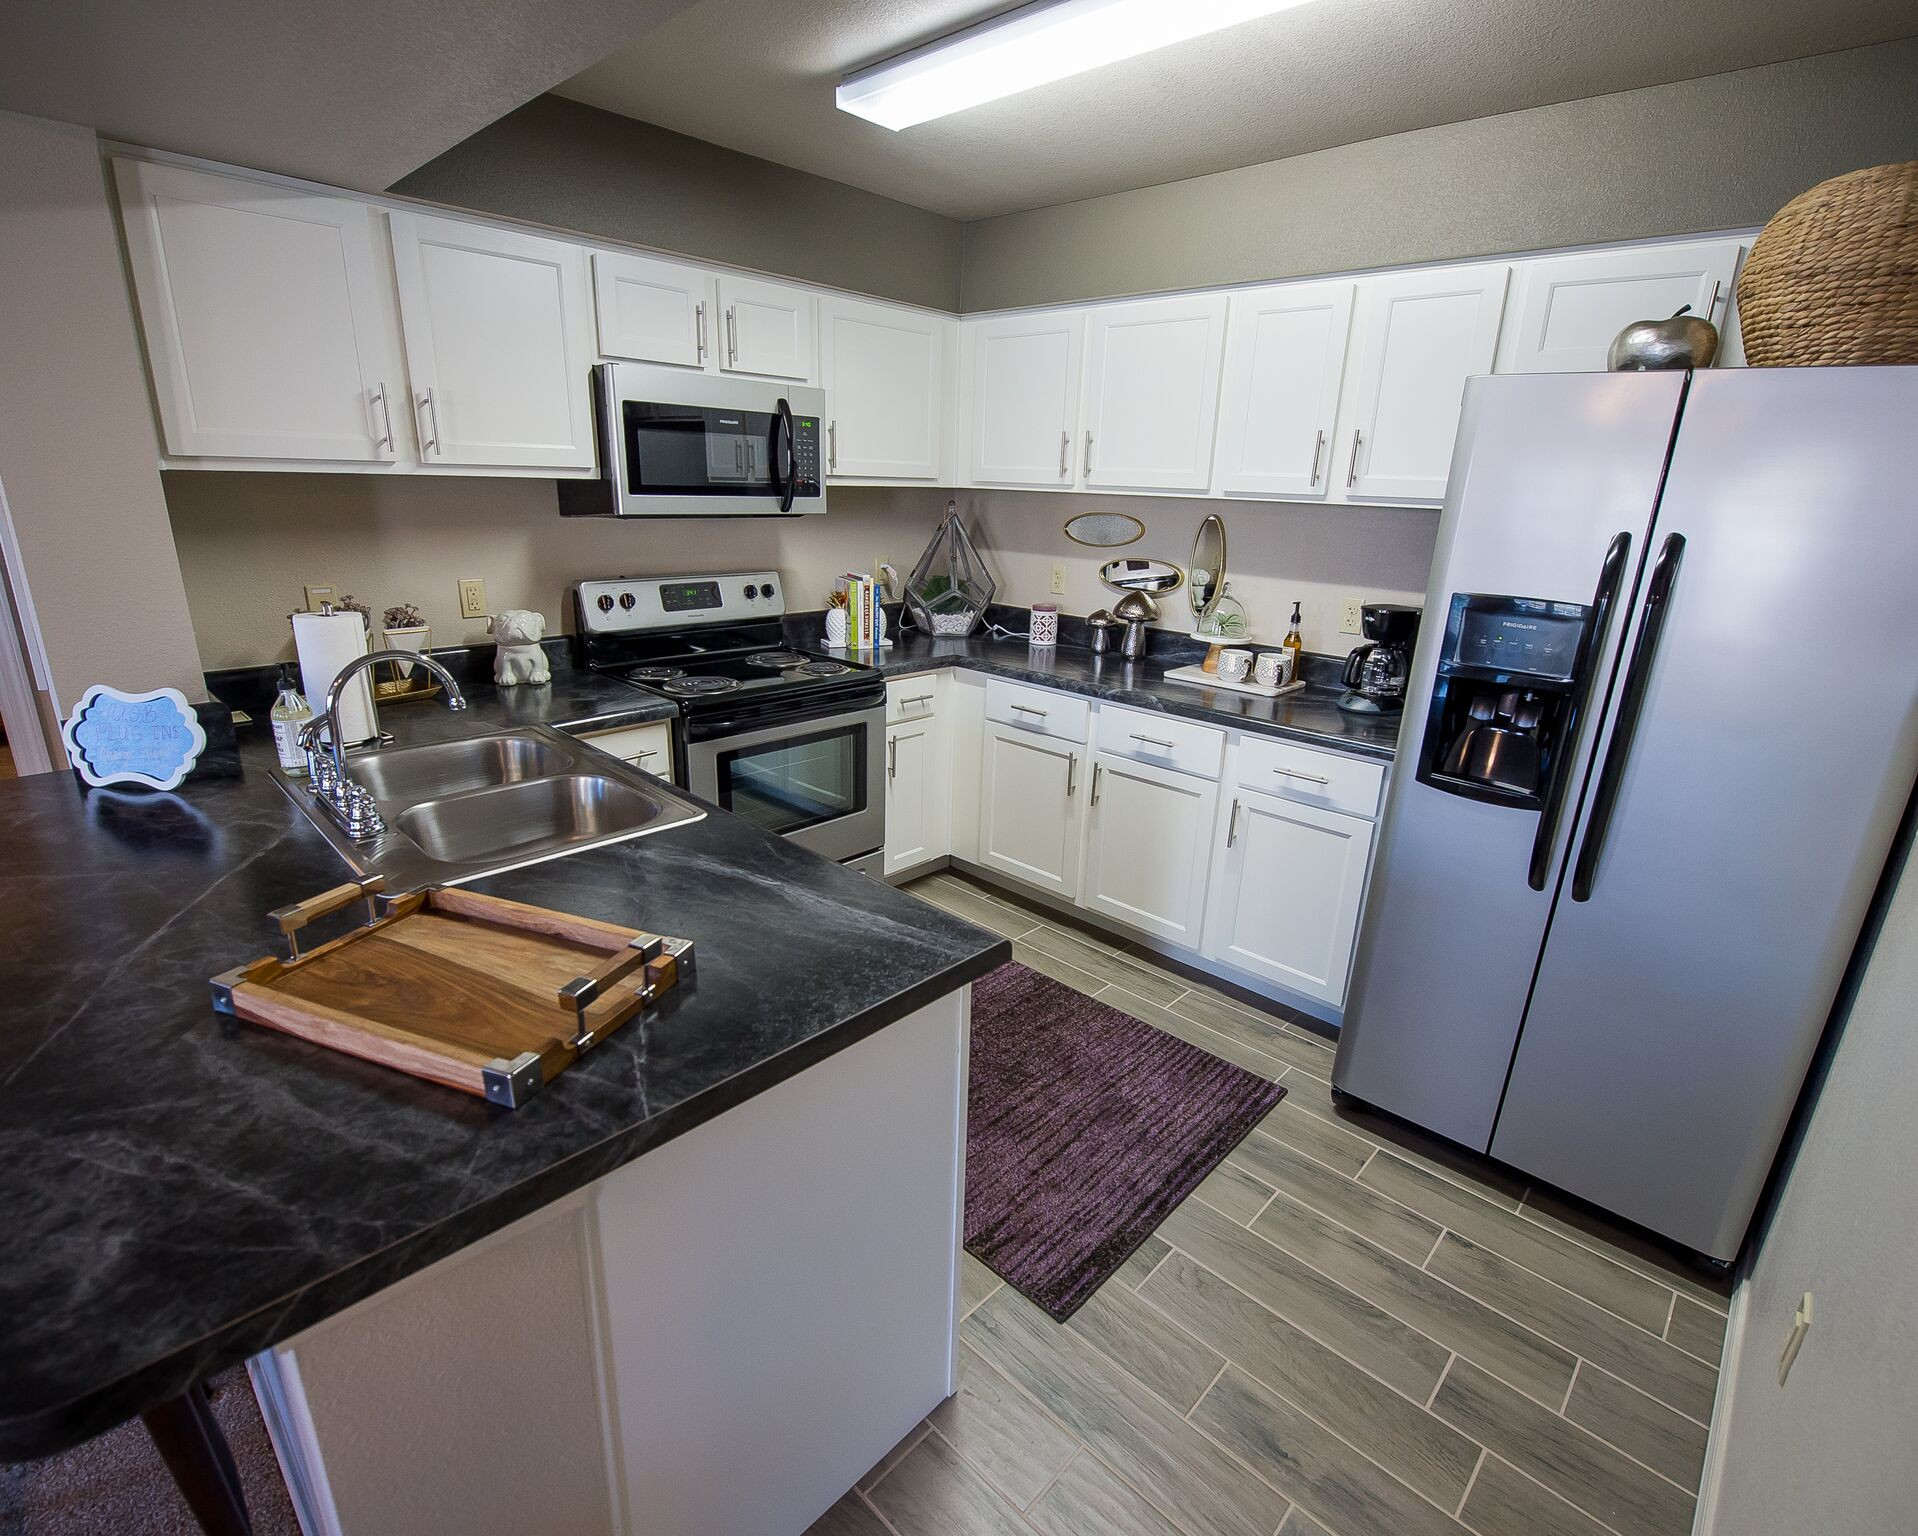 Apartments Near WSU Cottages at Crestview for Wichita State University Students in Wichita, KS